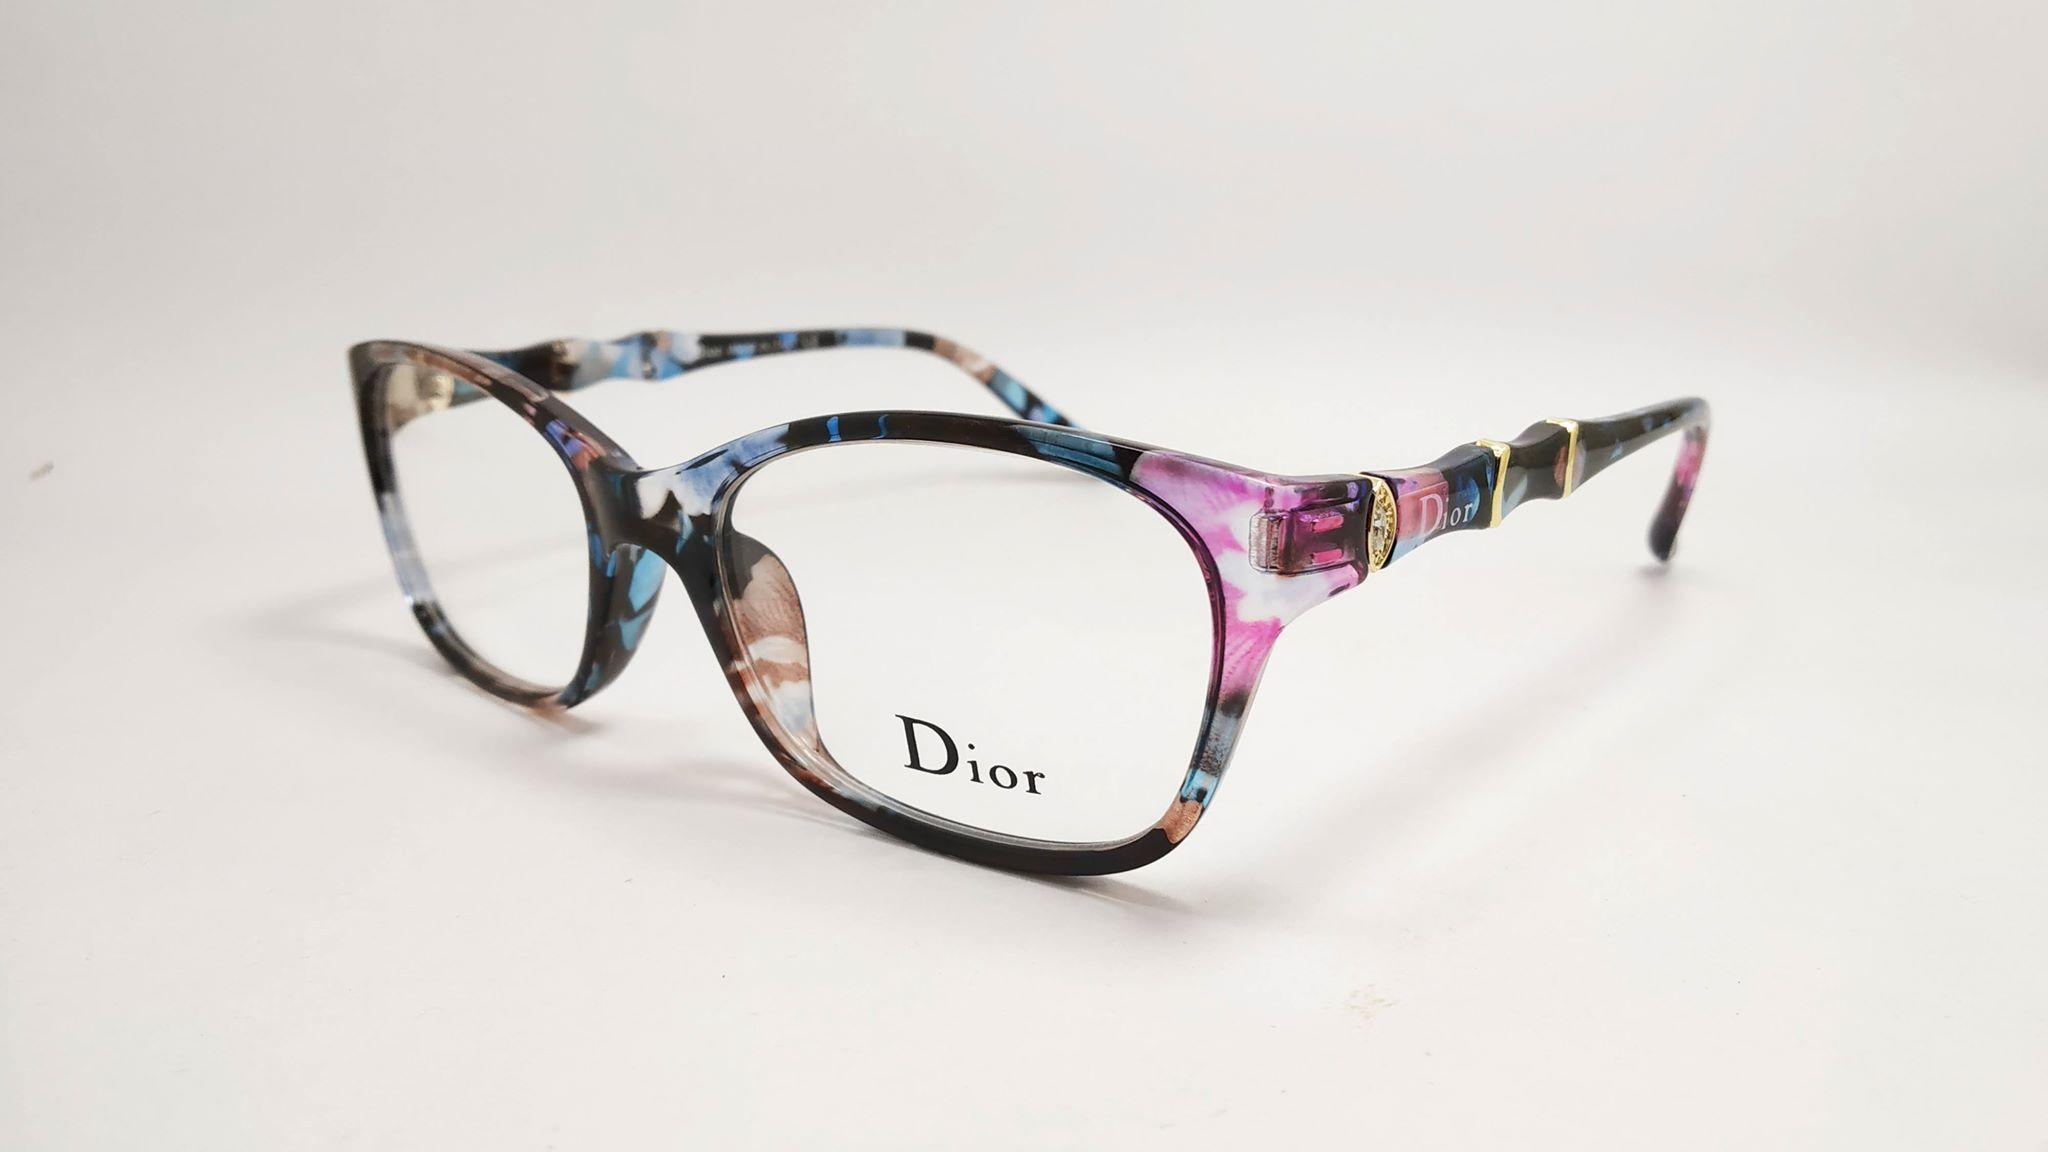 d512694e962 Womens Reading glasses - Buy Womens Reading glasses at Best Price in ...